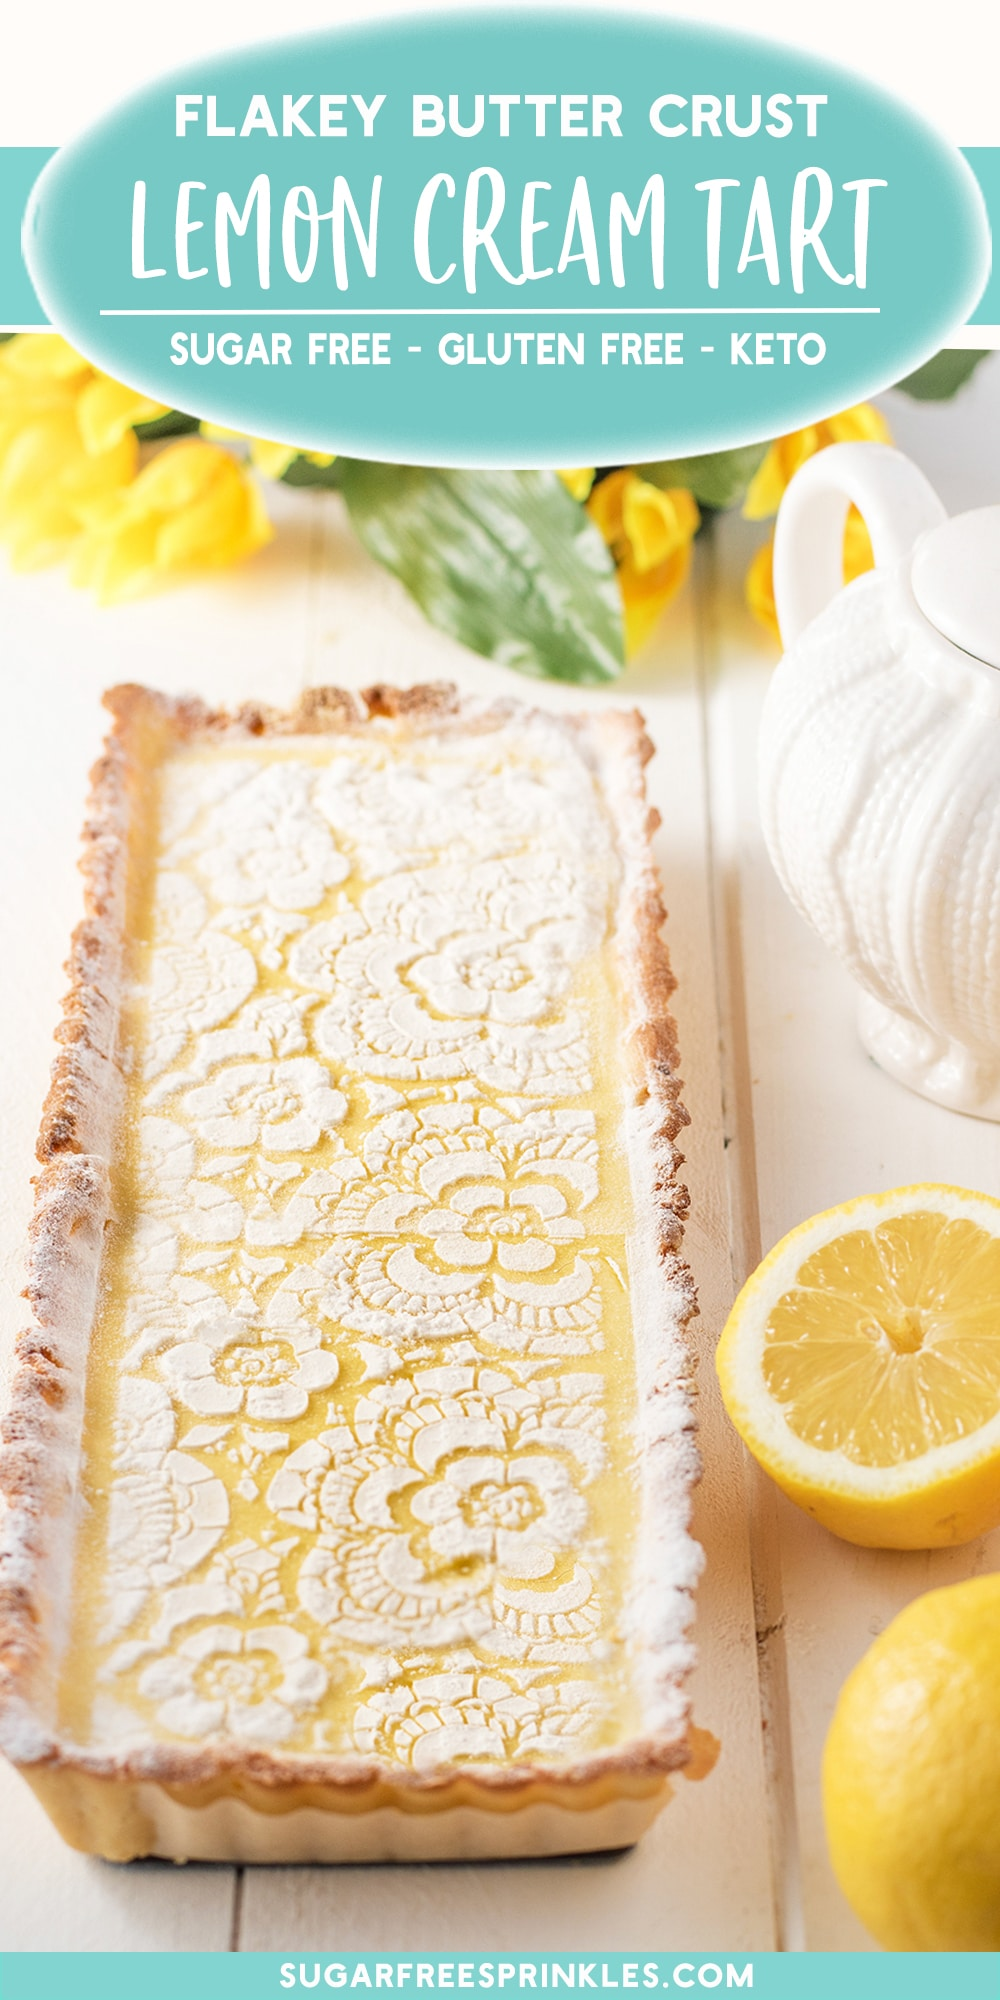 A creamy lemon tart that\'s low carb, gluten-free, and keto friendly recipe. This is an easy low carb baking recipe that takes no time at all to pull together. Clocking in at 5.3 carbs per slice it makes for a great low carb dessert option.